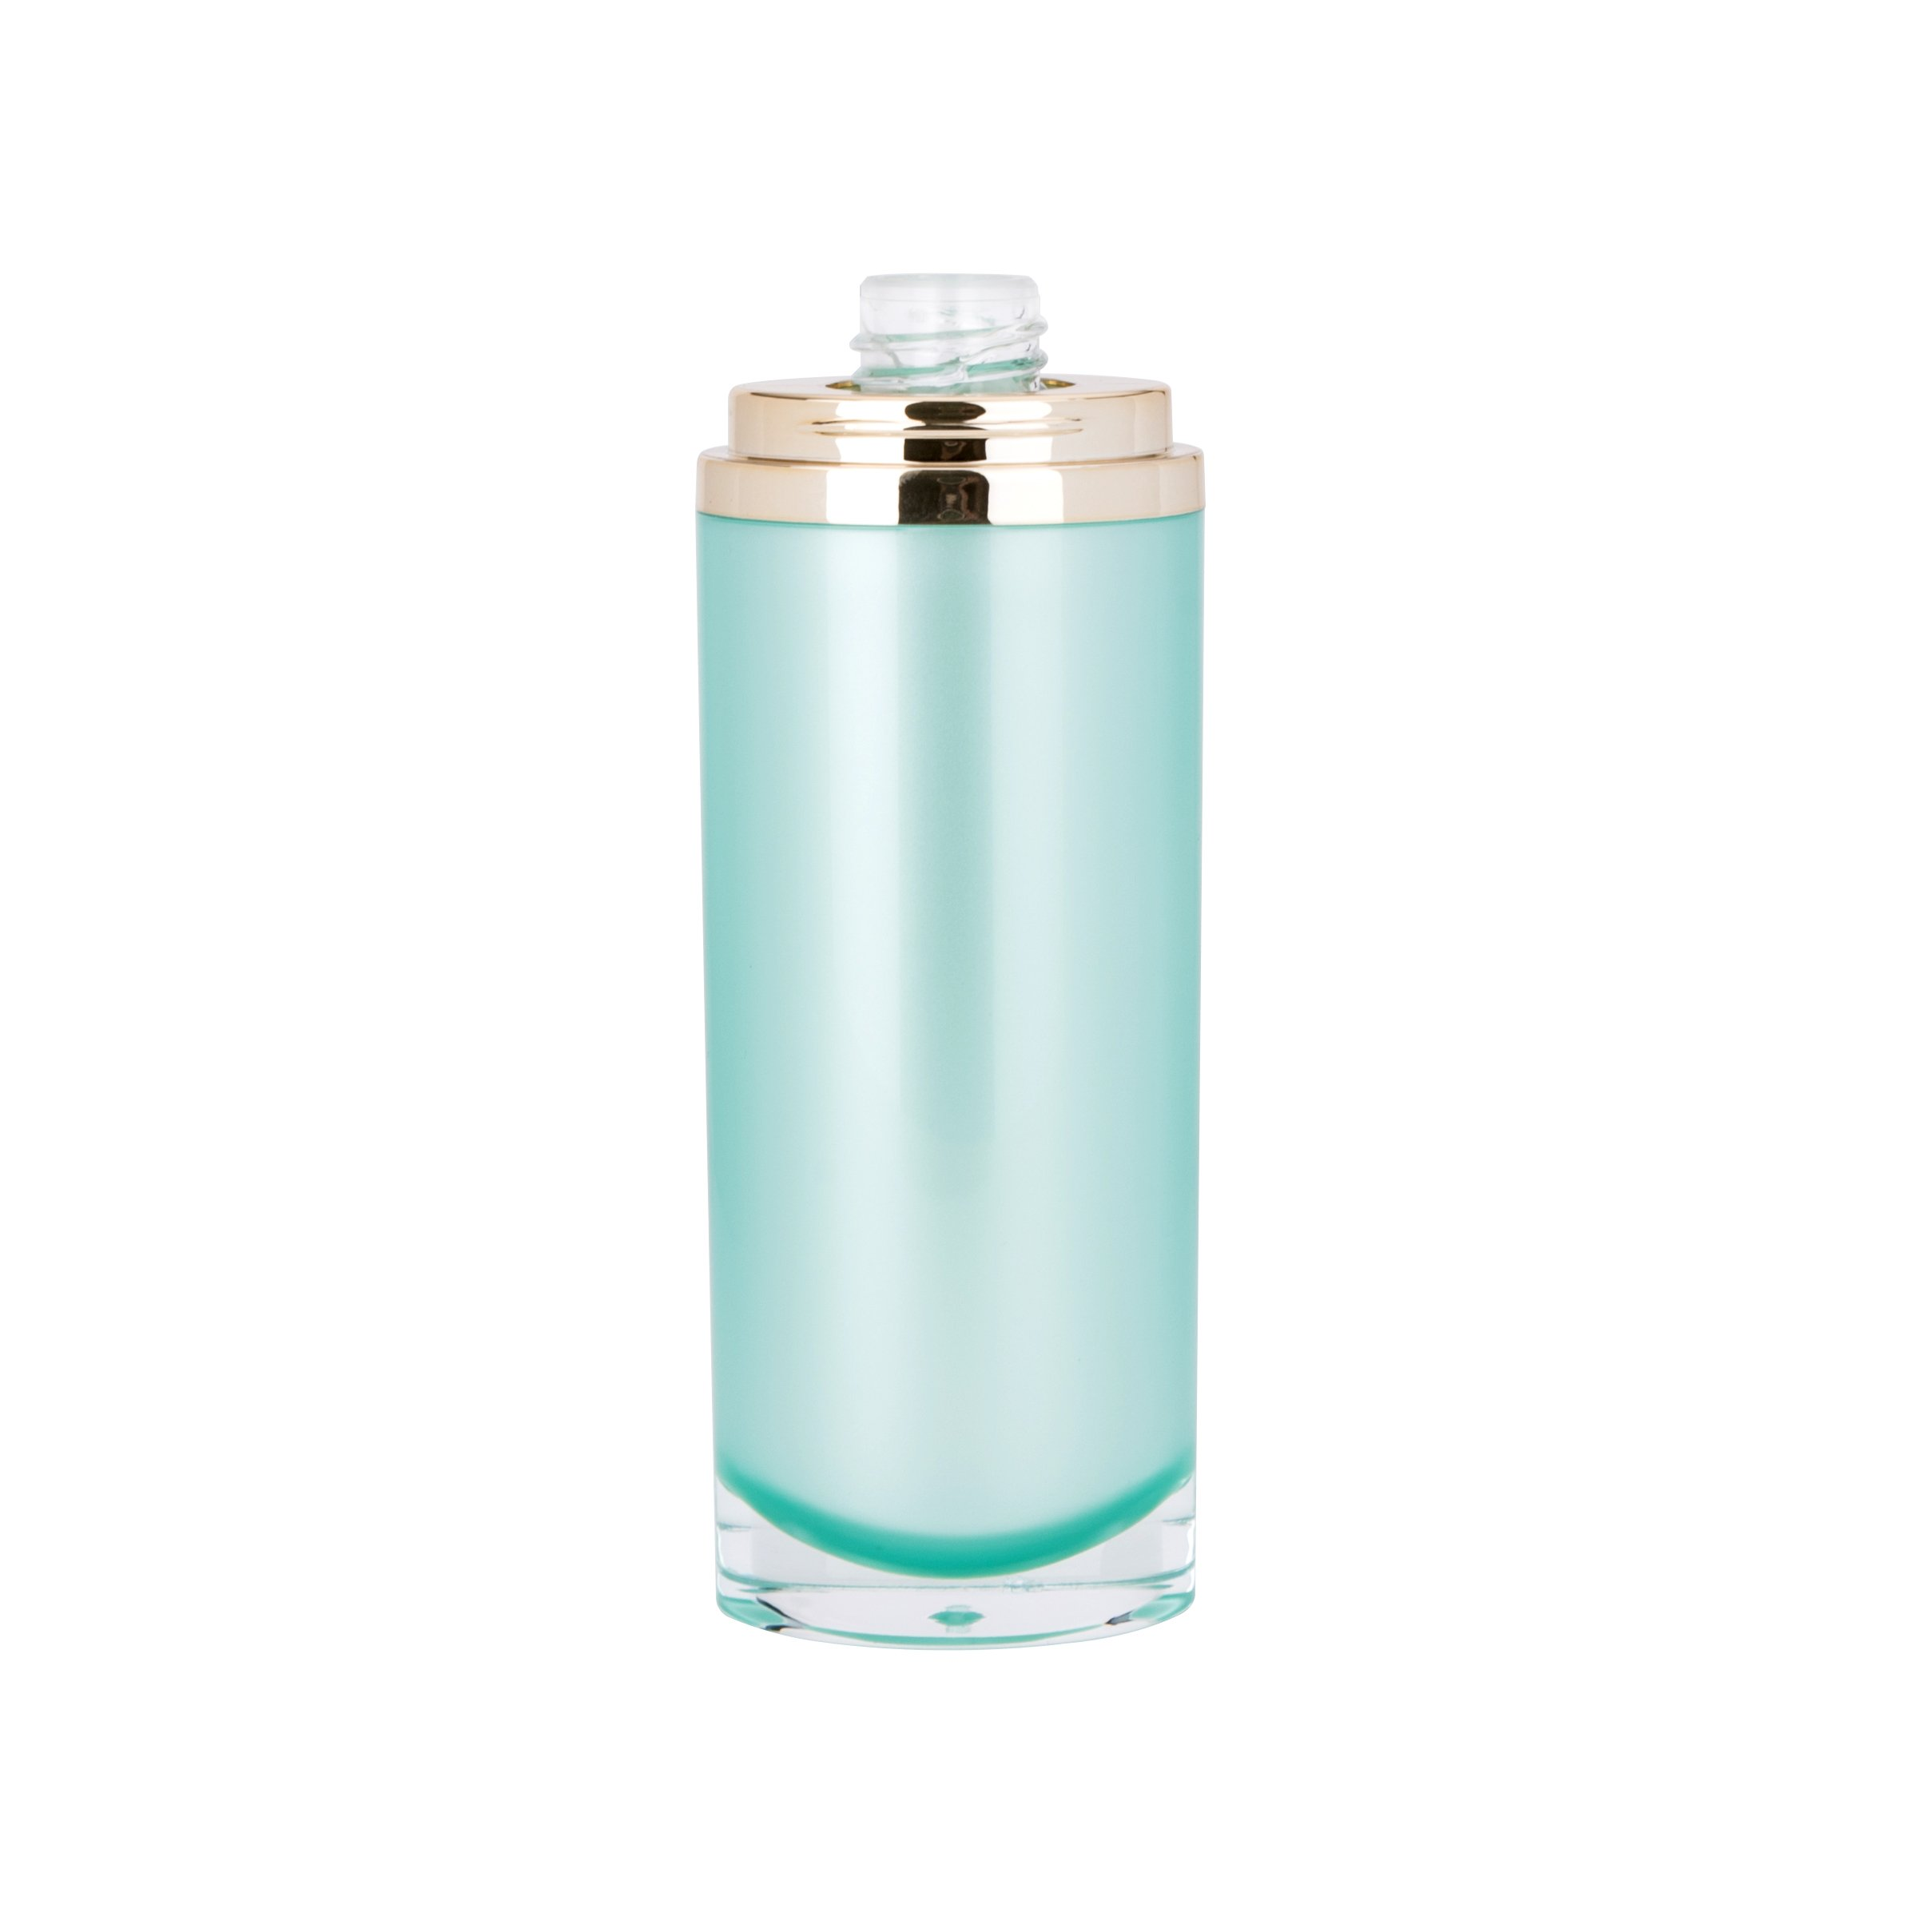 30Ml 50ml Oval Plastic Cosmetic Acrylic Bottle with Pump